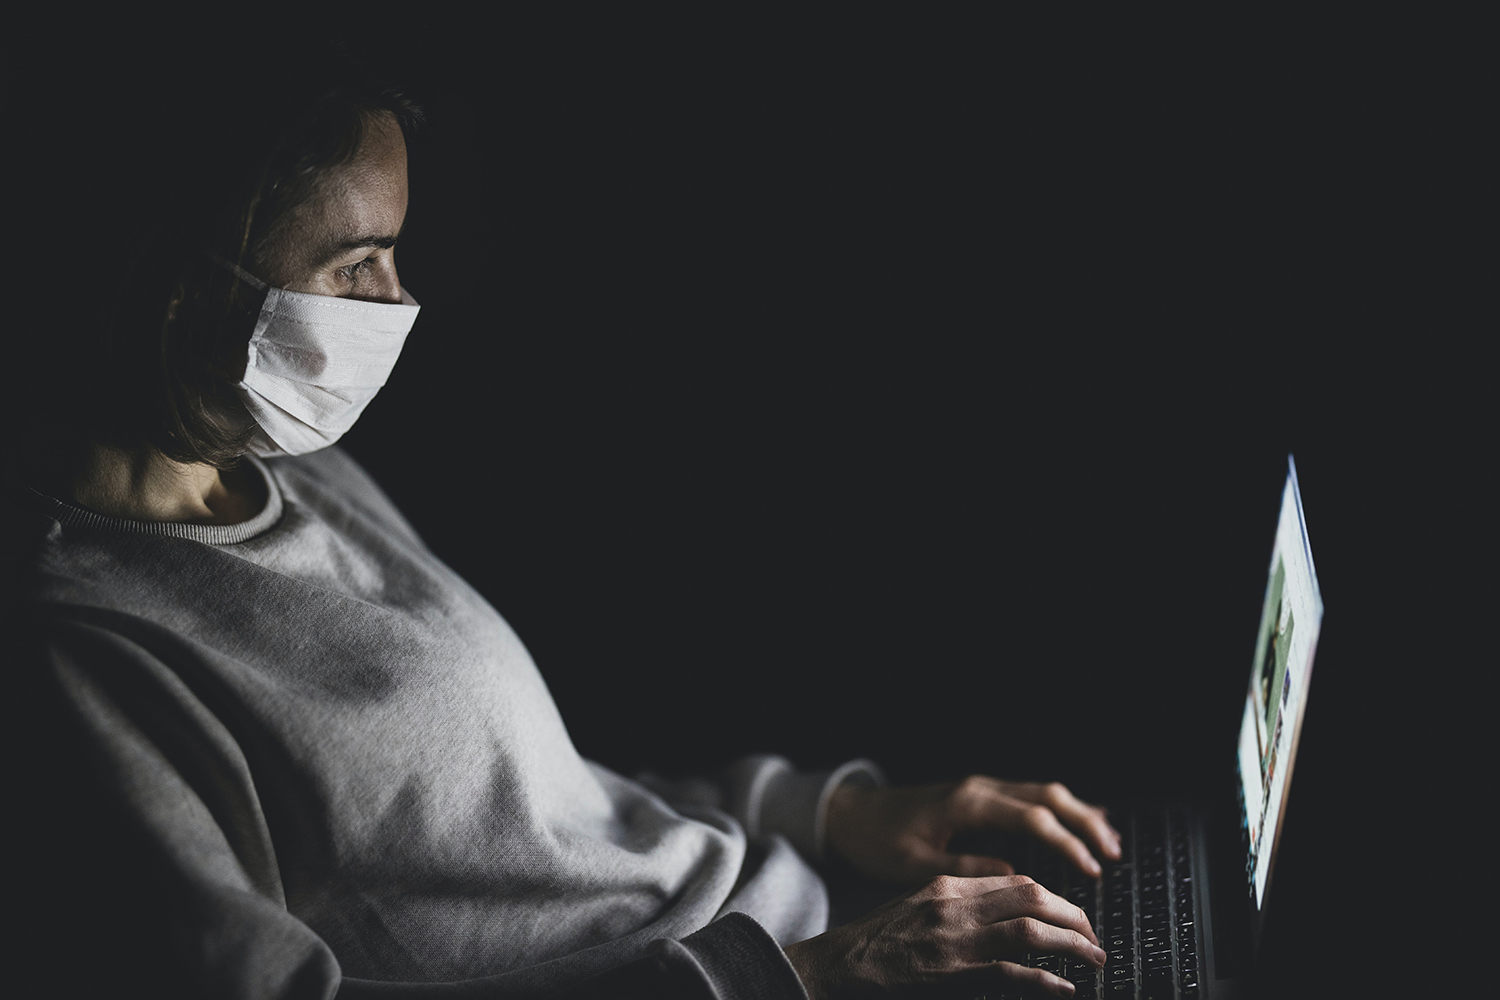 person wearing a face mask looking at their laptop